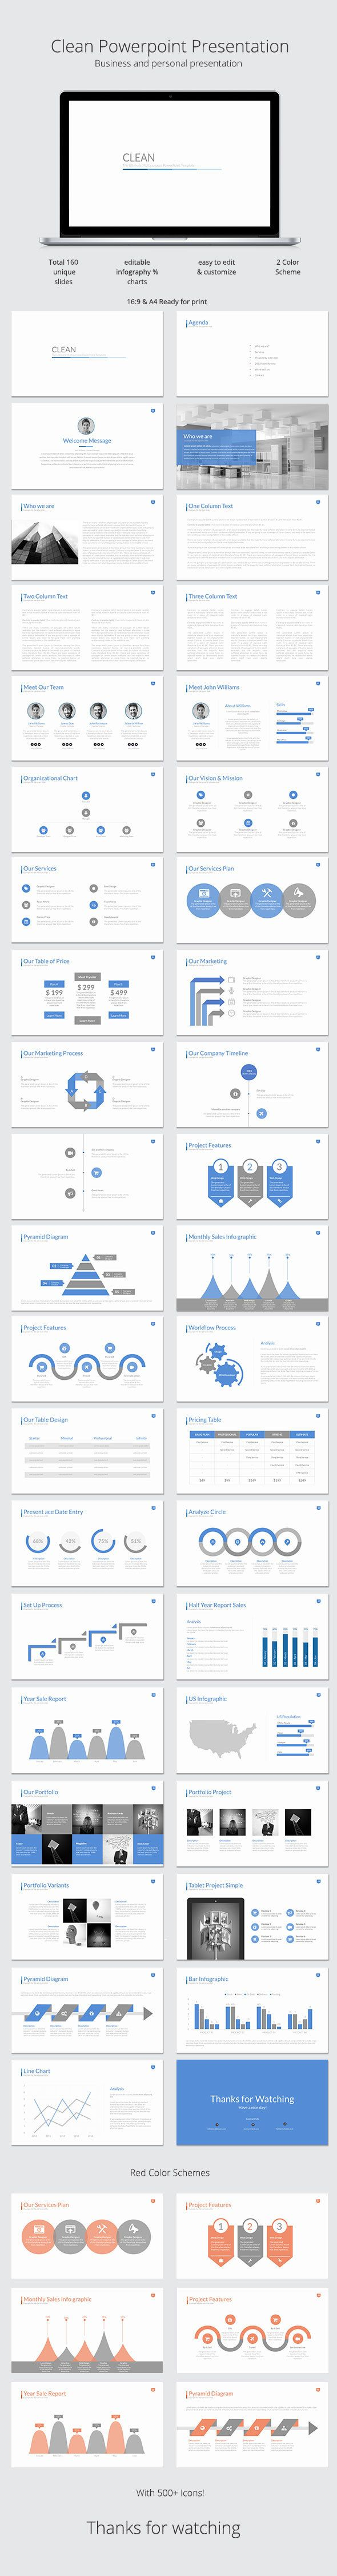 Usdgus  Unique  Ideas About Powerpoint Presentations On Pinterest With Interesting Clean Powerpoint Template With Awesome Themes For Powerpoint Free Download Animation Also Best Design Powerpoint In Addition Advanced Powerpoint Templates And Create Powerpoint Presentation Online Free As Well As Powerpoint Agenda Examples Additionally Powerpoint Templates Wedding From Pinterestcom With Usdgus  Interesting  Ideas About Powerpoint Presentations On Pinterest With Awesome Clean Powerpoint Template And Unique Themes For Powerpoint Free Download Animation Also Best Design Powerpoint In Addition Advanced Powerpoint Templates From Pinterestcom